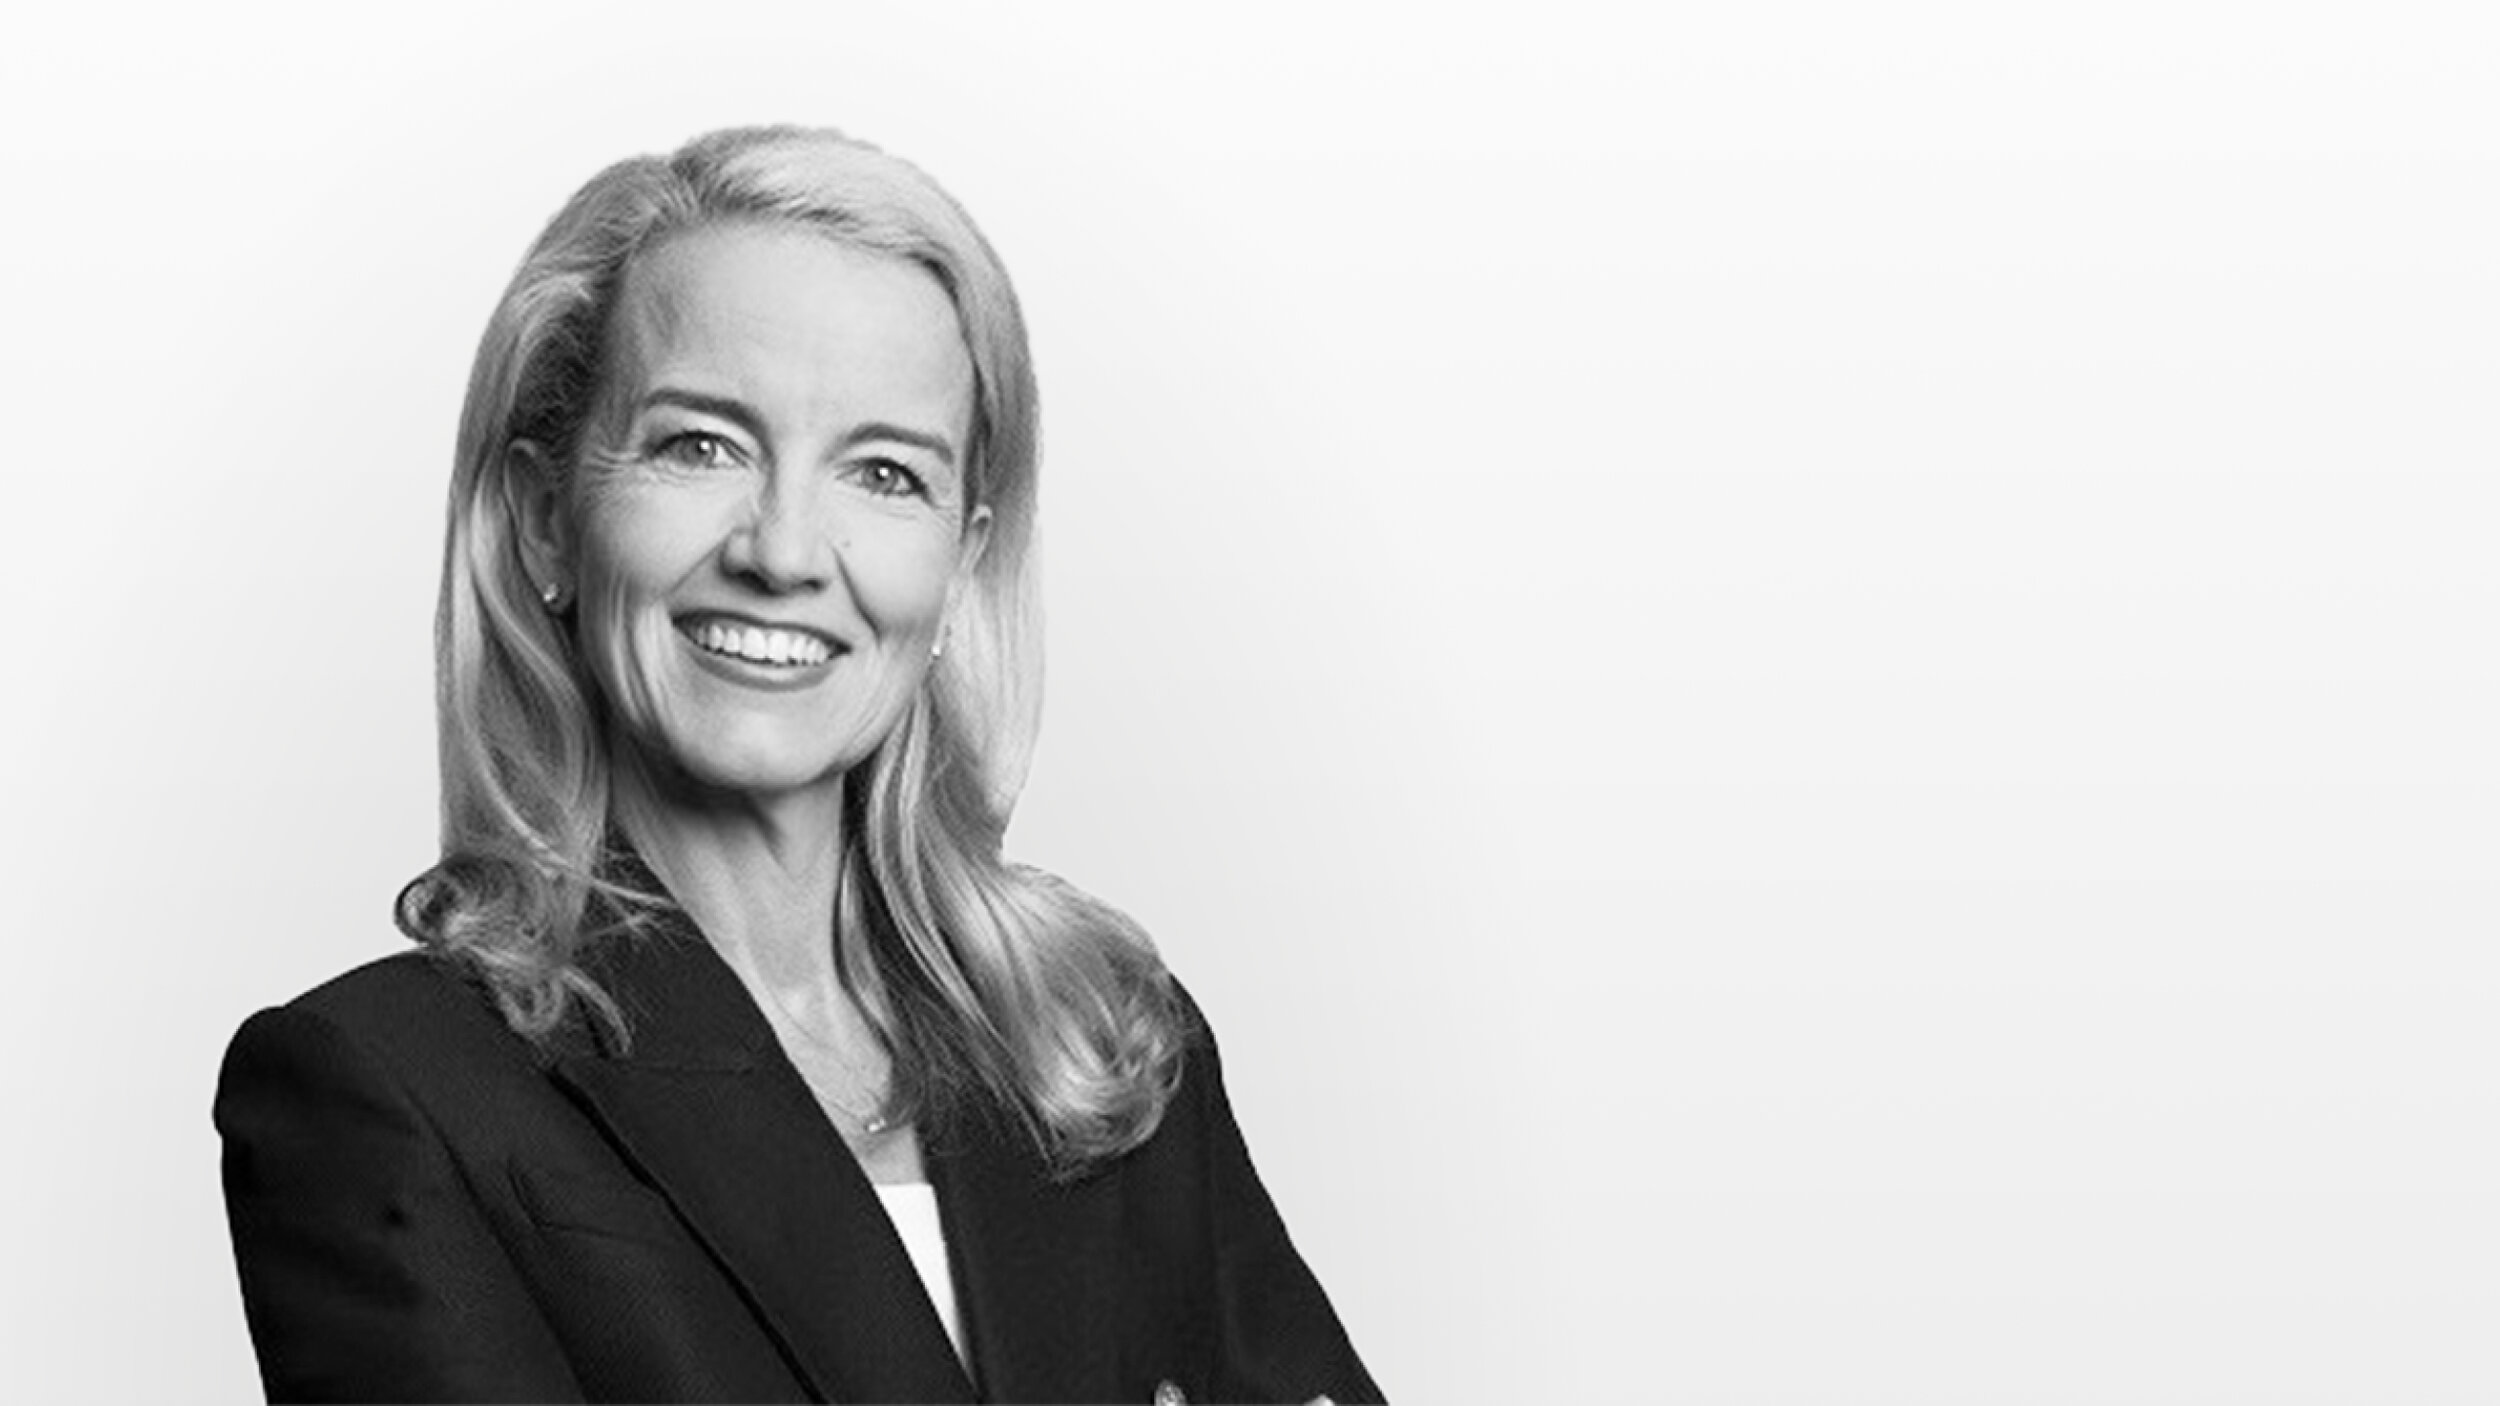 Cynthia Whelan: Scentre Group Chief Strategy and Business Development Officer - On being ambidextrous and how to unlock innovation across your entire organisation.